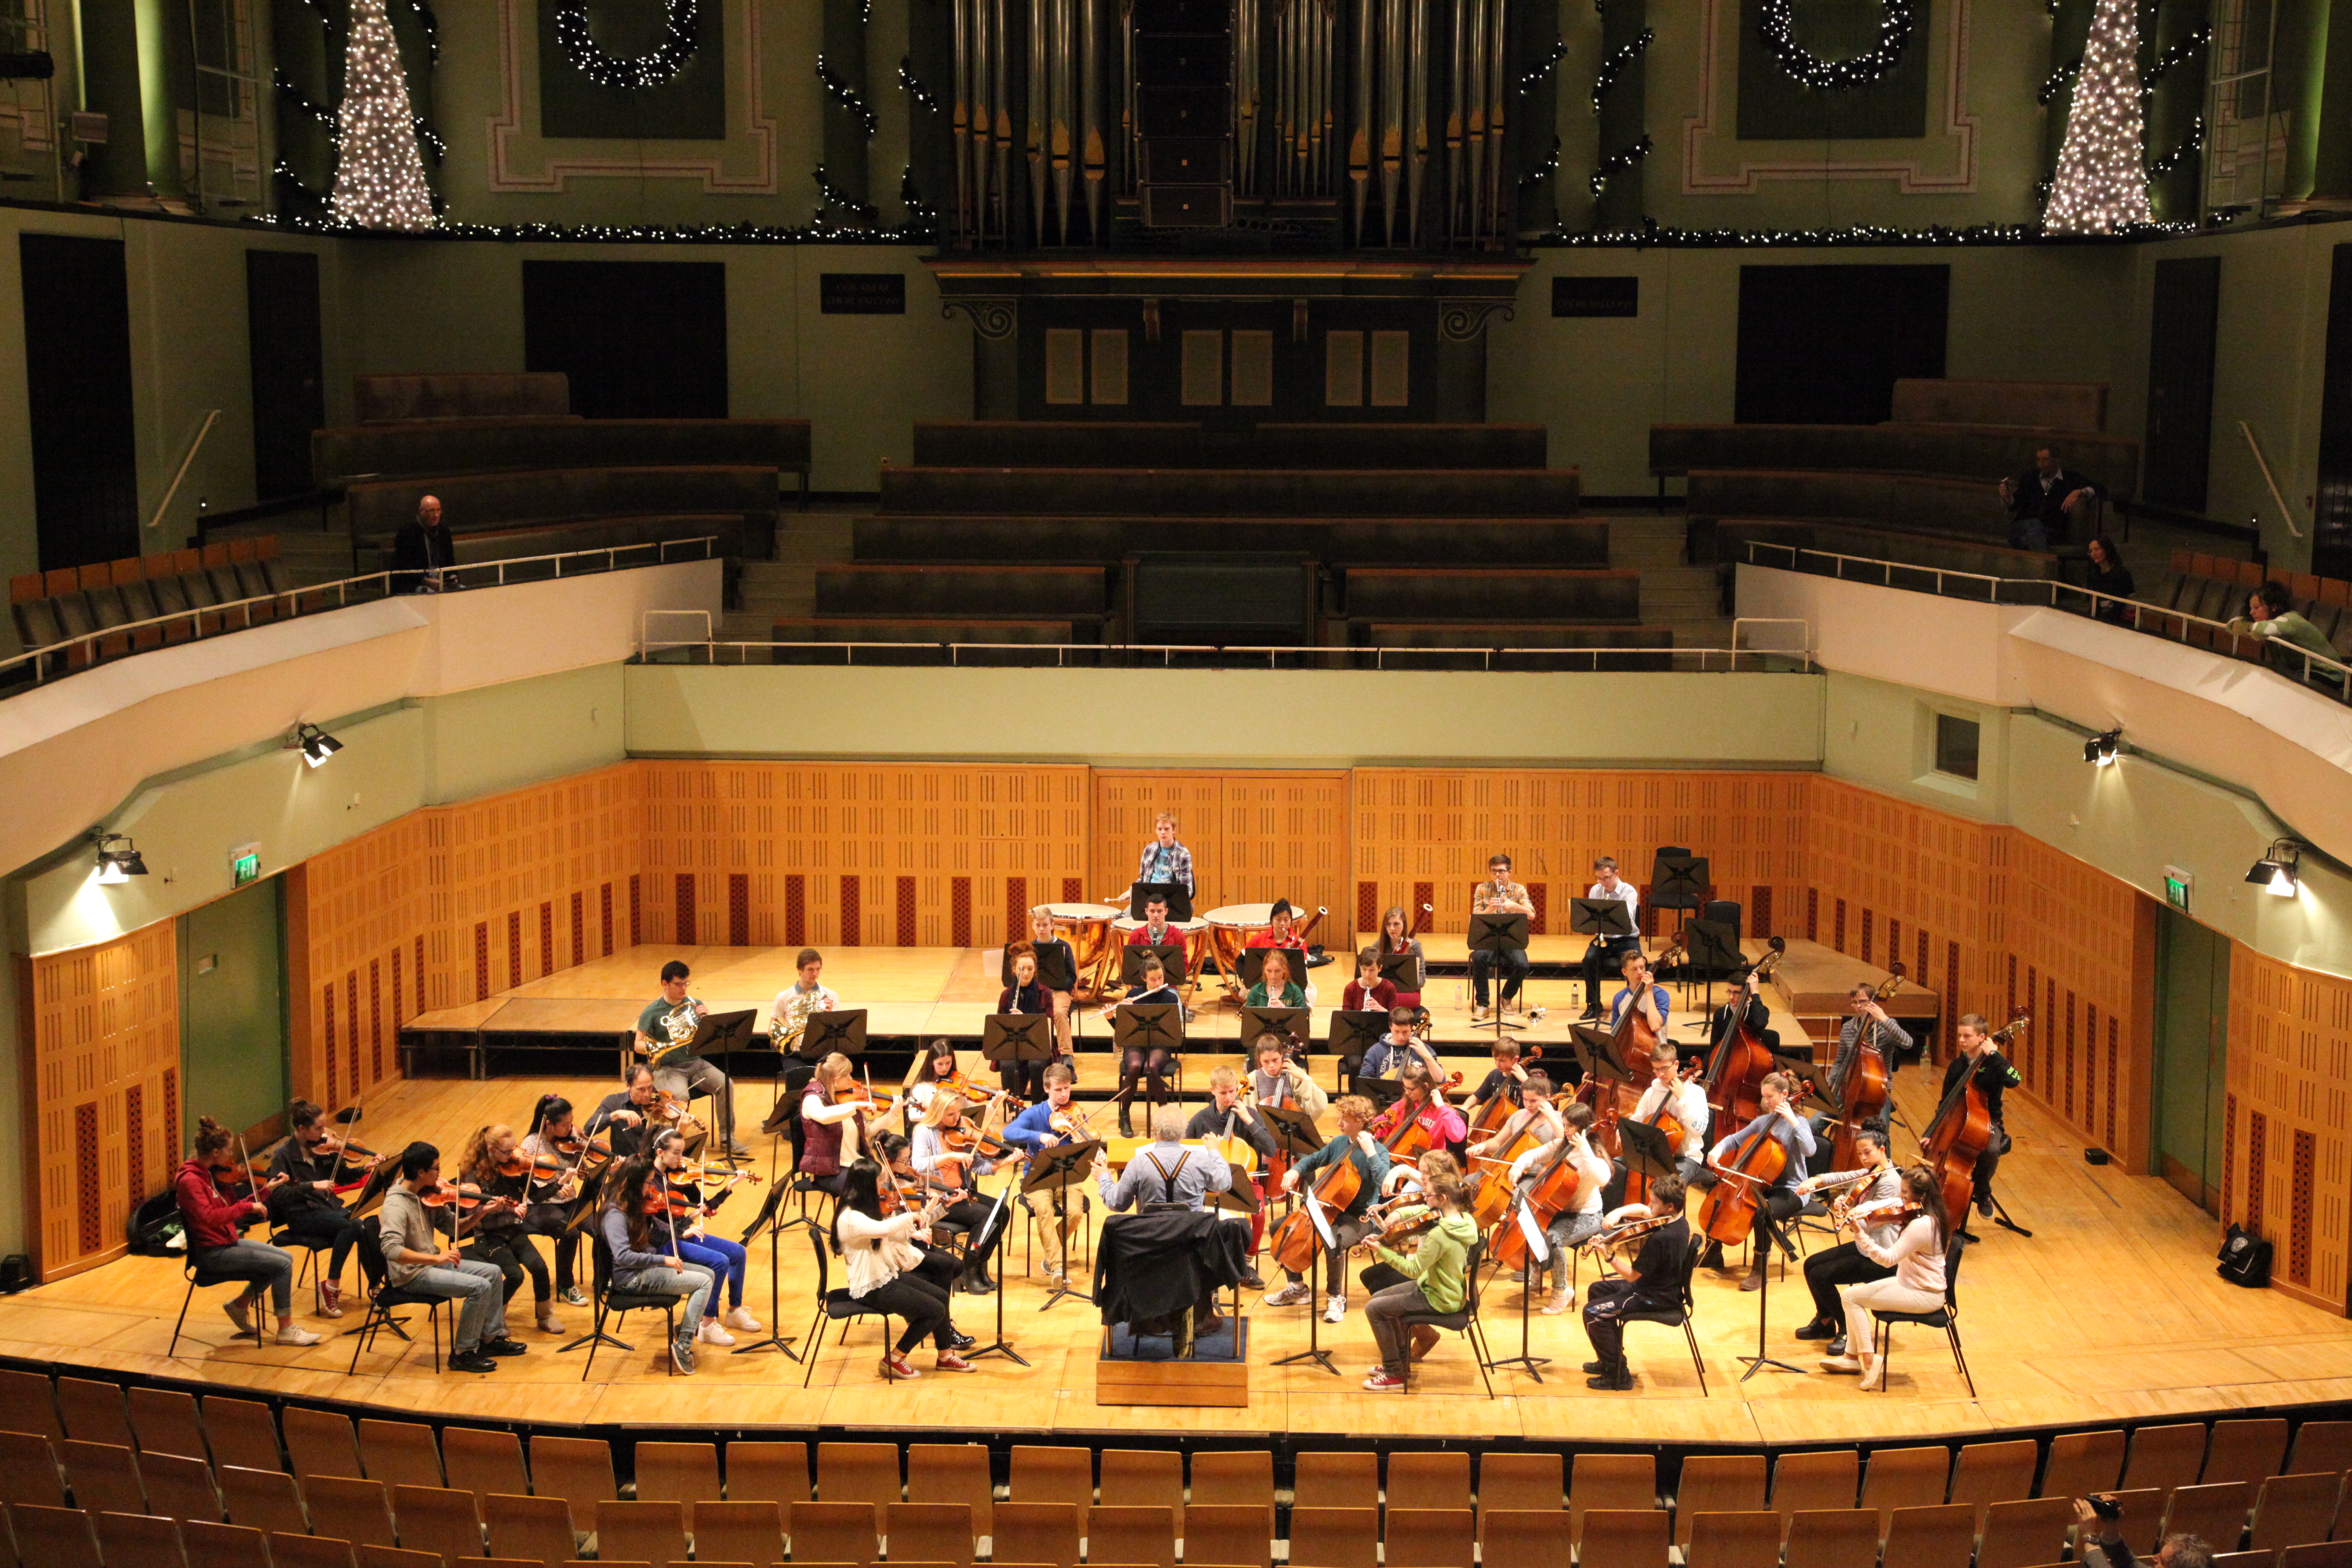 Reviews of the Orchestra of the 18th Century Masterclass - Irish